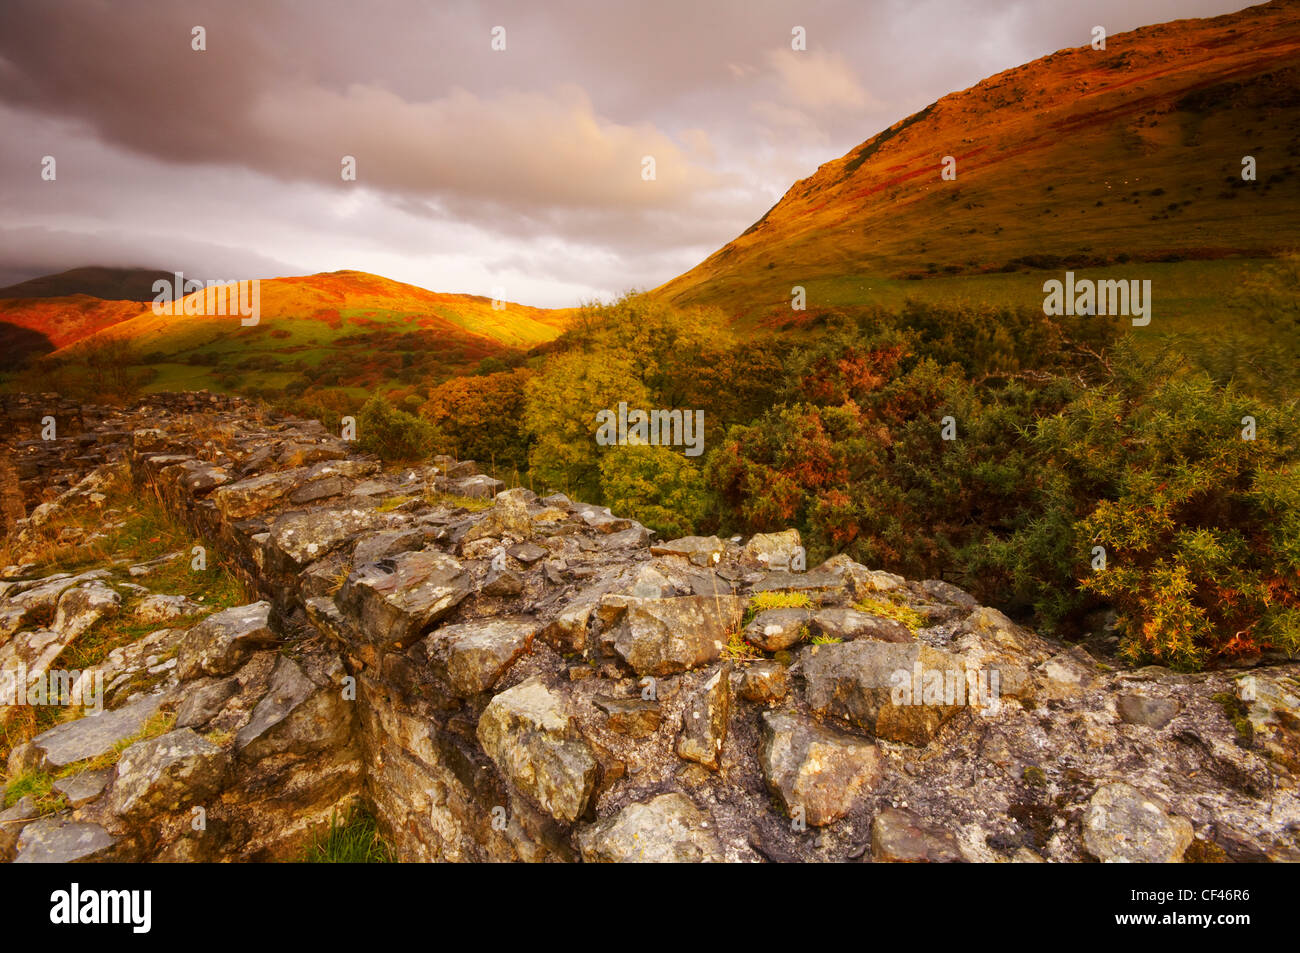 The hilltop ruin of Castell Y Bere in late Autumn light in Snowdonia. Stock Photo